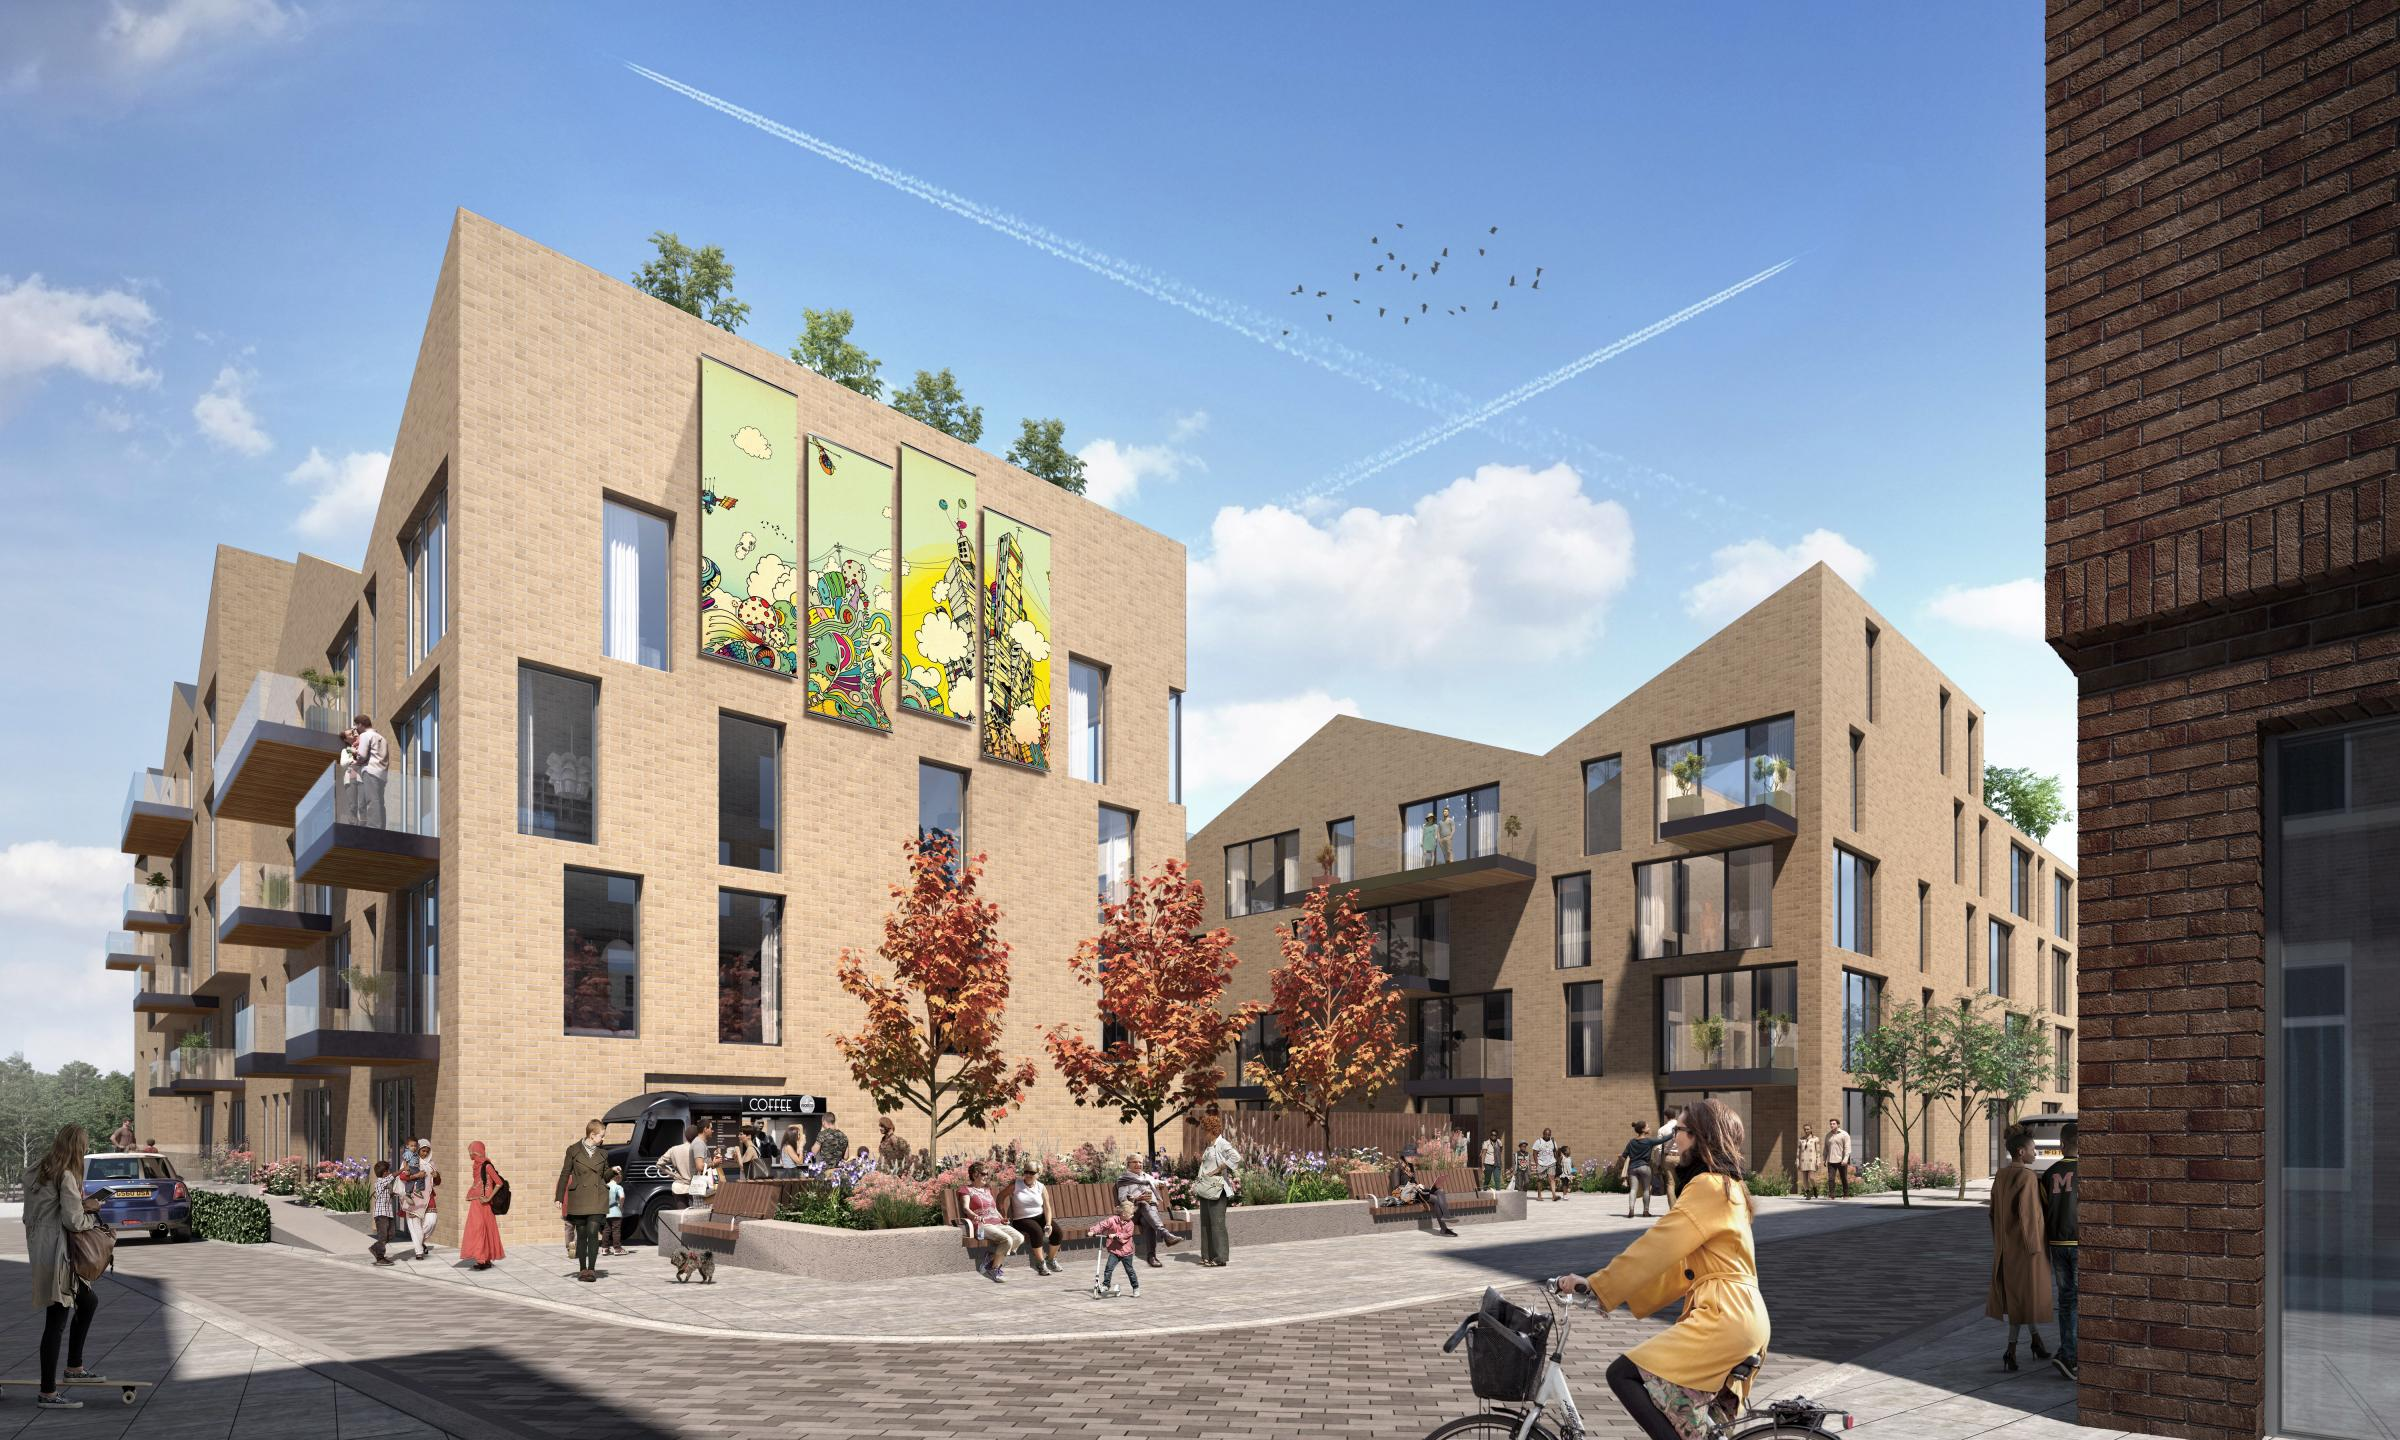 theboltonnews.co.uk - Seamus McDonnell - REVEALED: Plans for £27.5m 'Urban Village' in town centre